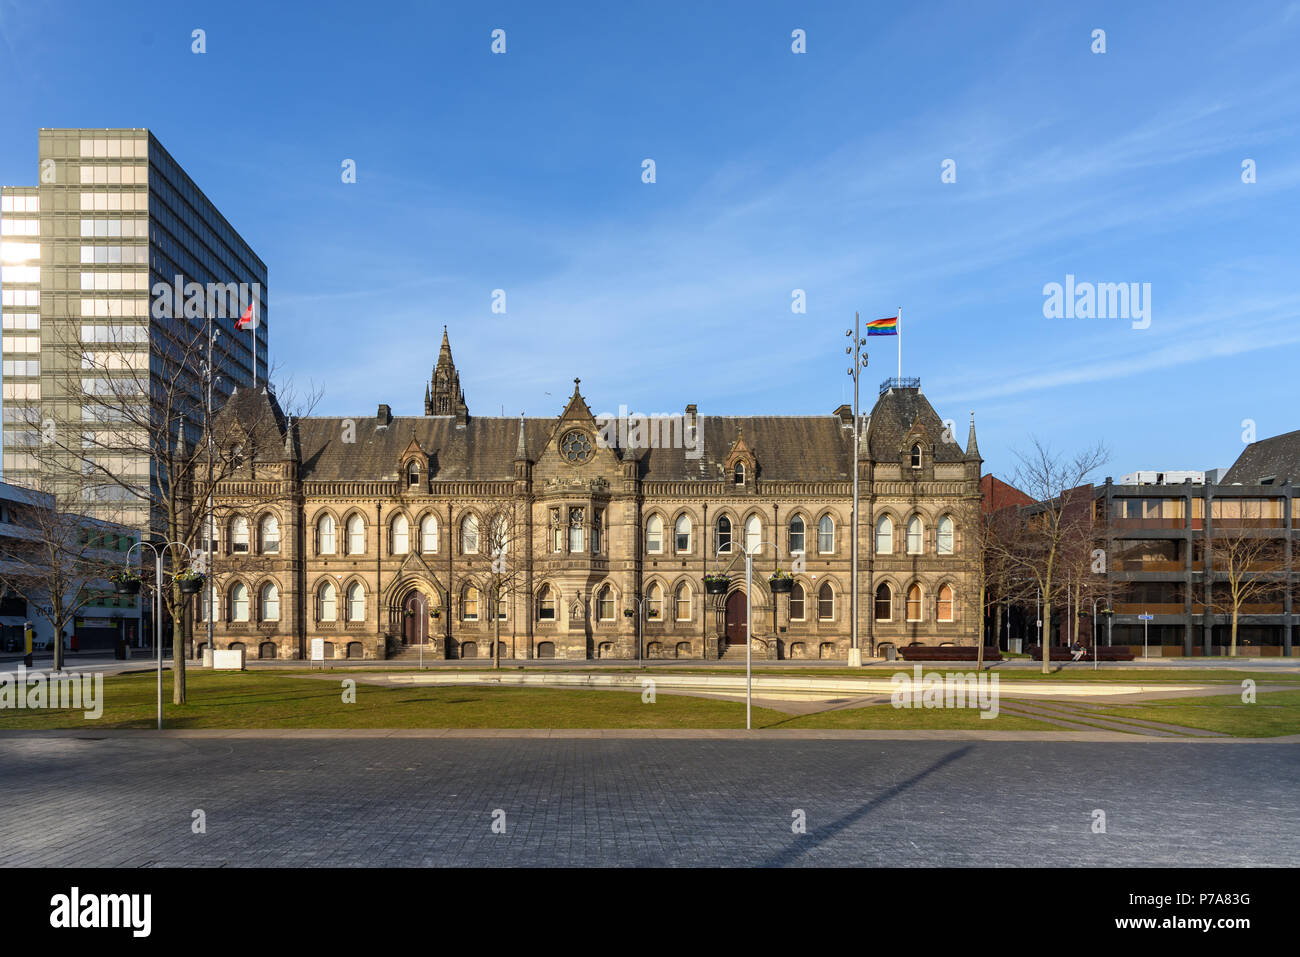 Town hall of Middlesbrough city , Teeside UK - Stock Image